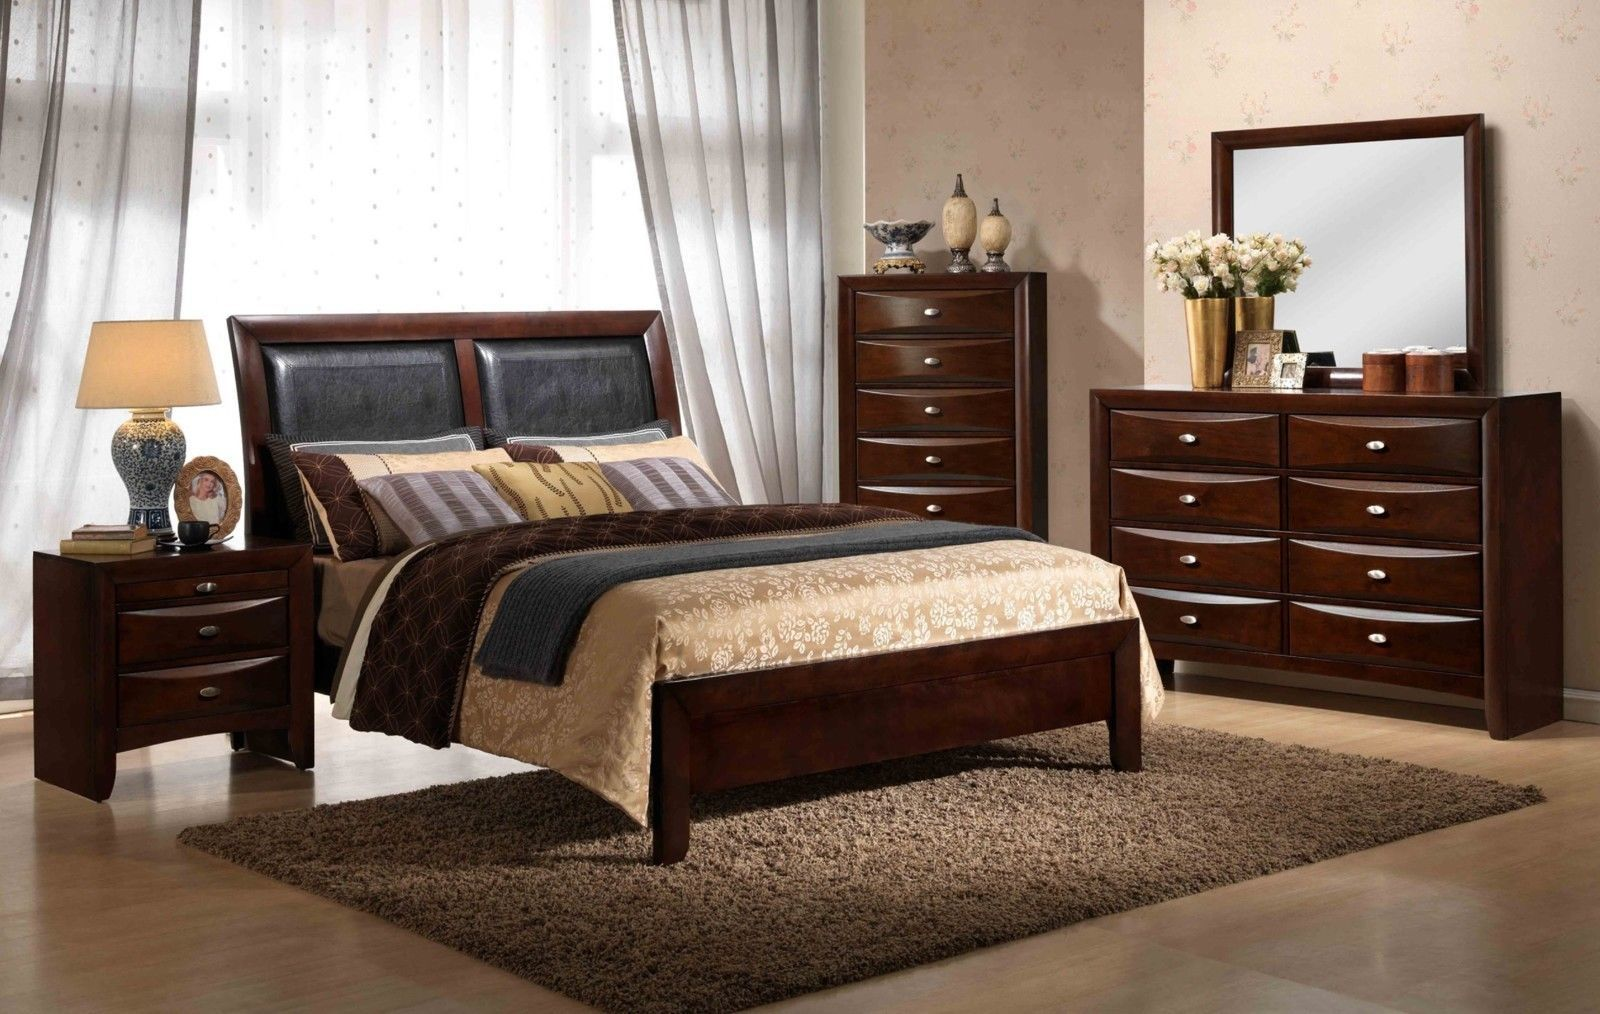 Roundhill Furniture Emily 111 Contemporary Wood Bedroom Set with Bed ...